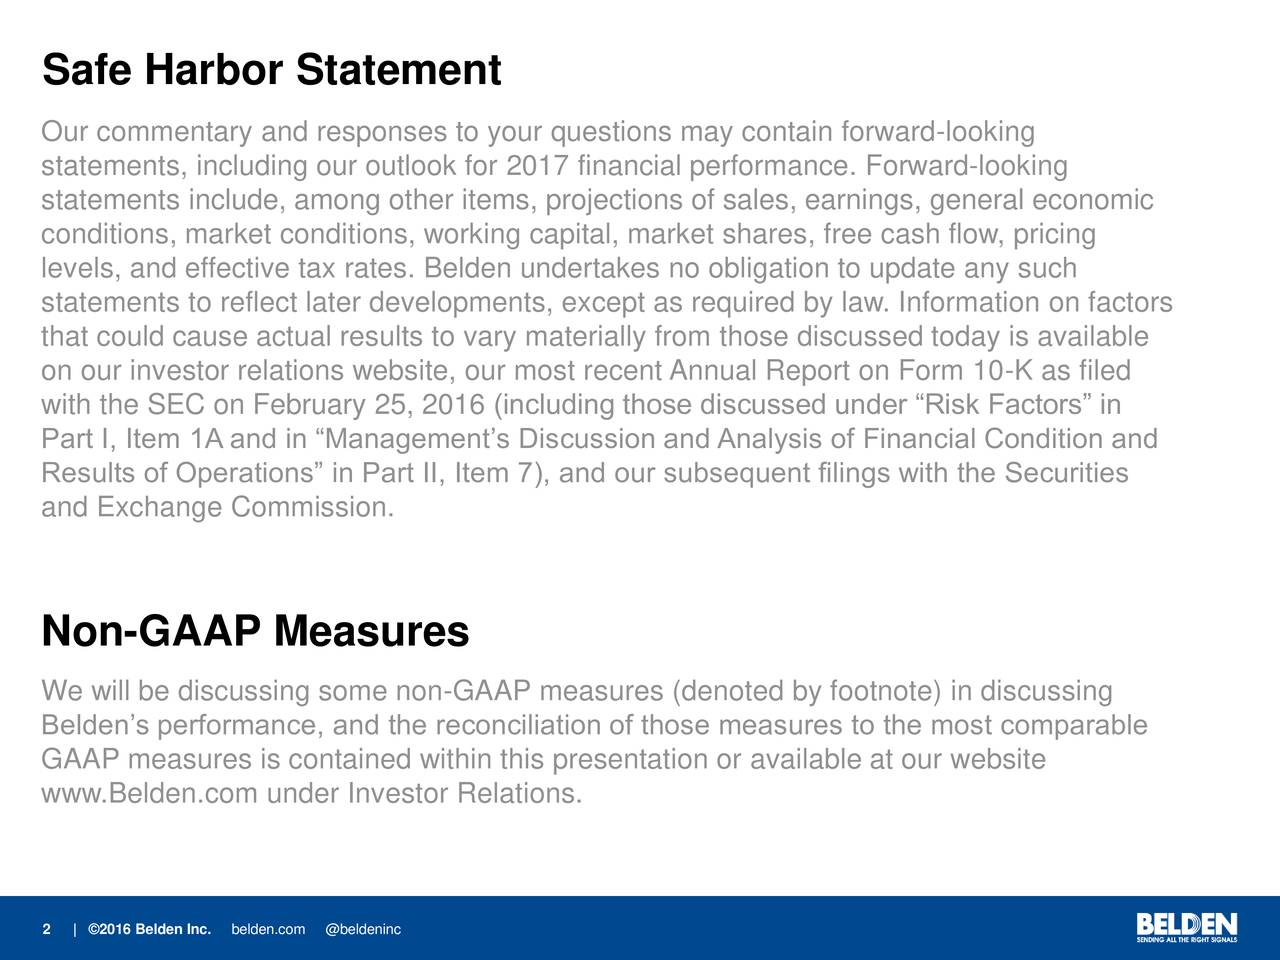 Our commentary and responses to your questions may contain forward-looking statements, including our outlook for 2017 financial performance. Forward-looking statements include, among other items, projections of sales, earnings, general economic conditions, market conditions, working capital, market shares, free cash flow, pricing levels, and effective tax rates. Belden undertakes no obligation to update any such statements to reflect later developments, except as required by law. Information on factors that could cause actual results to vary materially from those discussed today is available on our investor relations website, our most recent Annual Report on Form 10-K as filed with the SEC on February 25, 2016 (including those discussed under Risk Factors in Part I, Item 1A and in Managements Discussion and Analysis of Financial Condition and Results of Operations in Part II, Item 7), and our subsequent filings with the Securities and Exchange Commission. Non-GAAP Measures We will be discussing some non-GAAP measures (denoted by footnote) in discussing Beldens performance, and the reconciliation of those measures to the most comparable GAAP measures is contained within this presentation or available at our website www.Belden.com under Investor Relations. 2 | 2016 Beldbelden.c@beldeninc